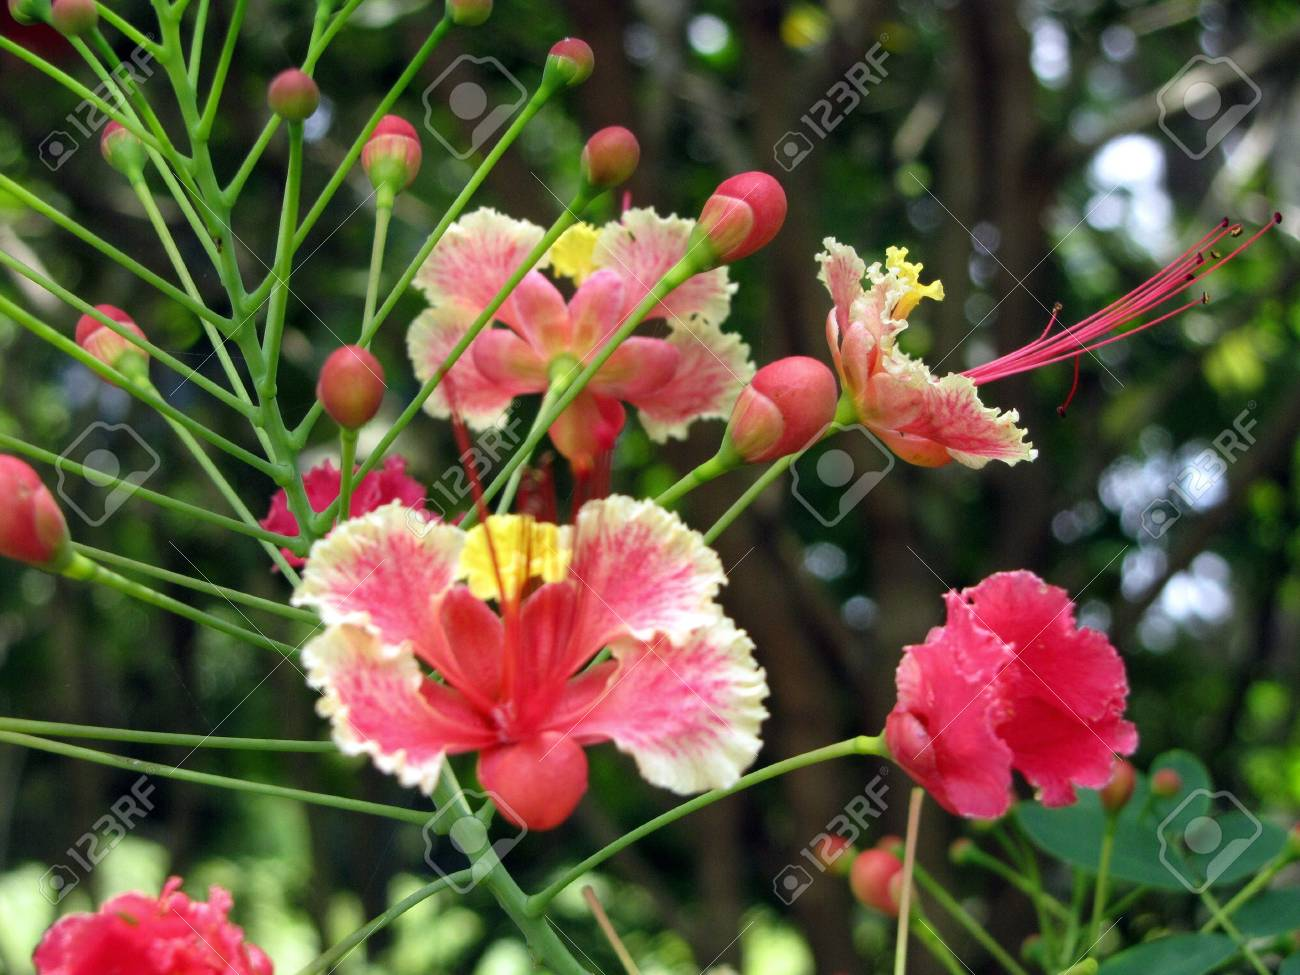 Pinky beautiful flowers blooming bright stock photo picture and pinky beautiful flowers blooming bright stock photo 4609266 izmirmasajfo Images